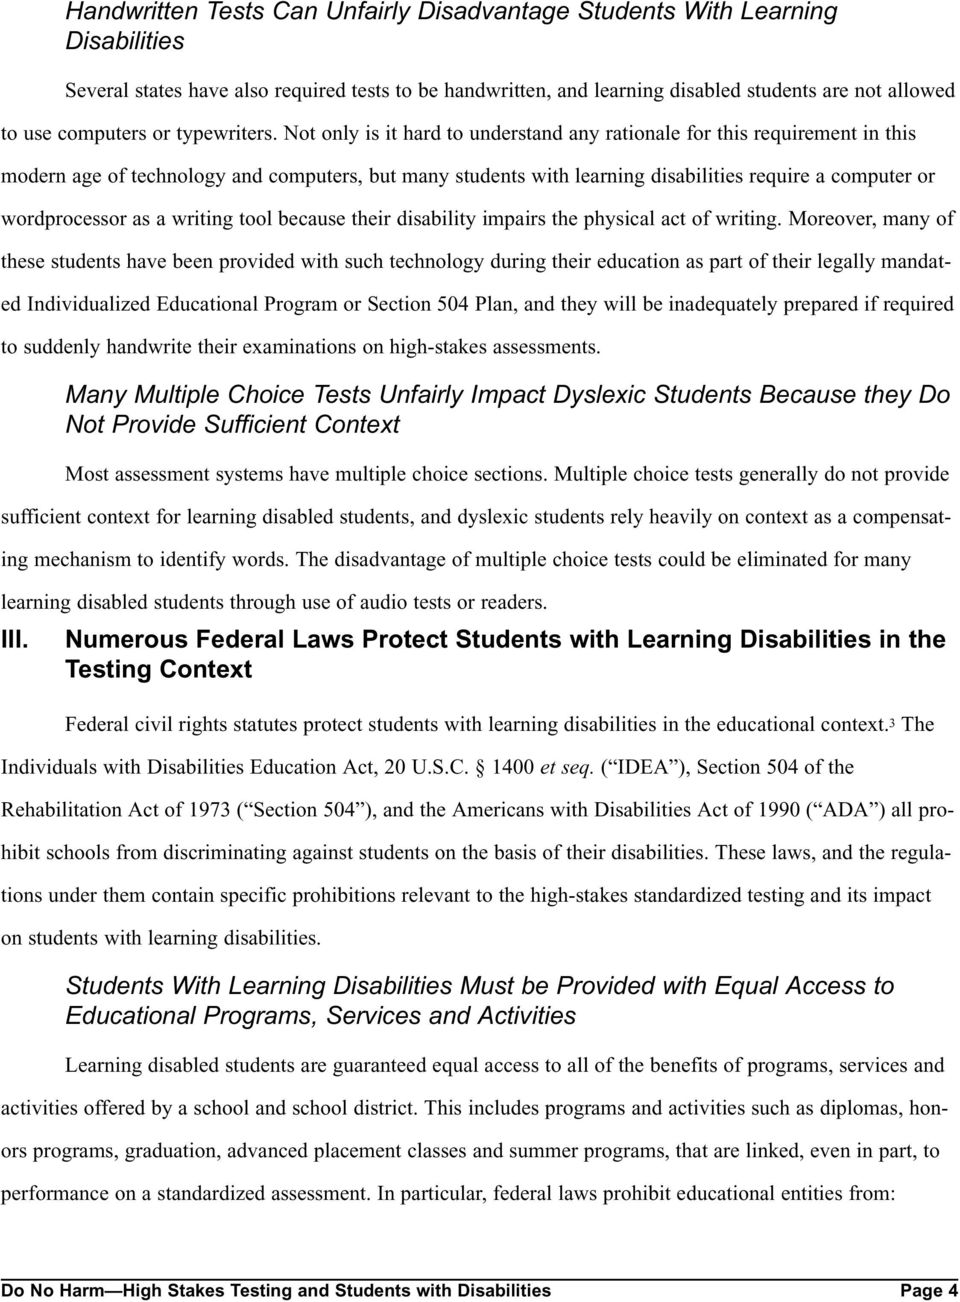 Not only is it hard to understand any rationale for this requirement in this modern age of technology and computers, but many students with learning disabilities require a computer or wordprocessor